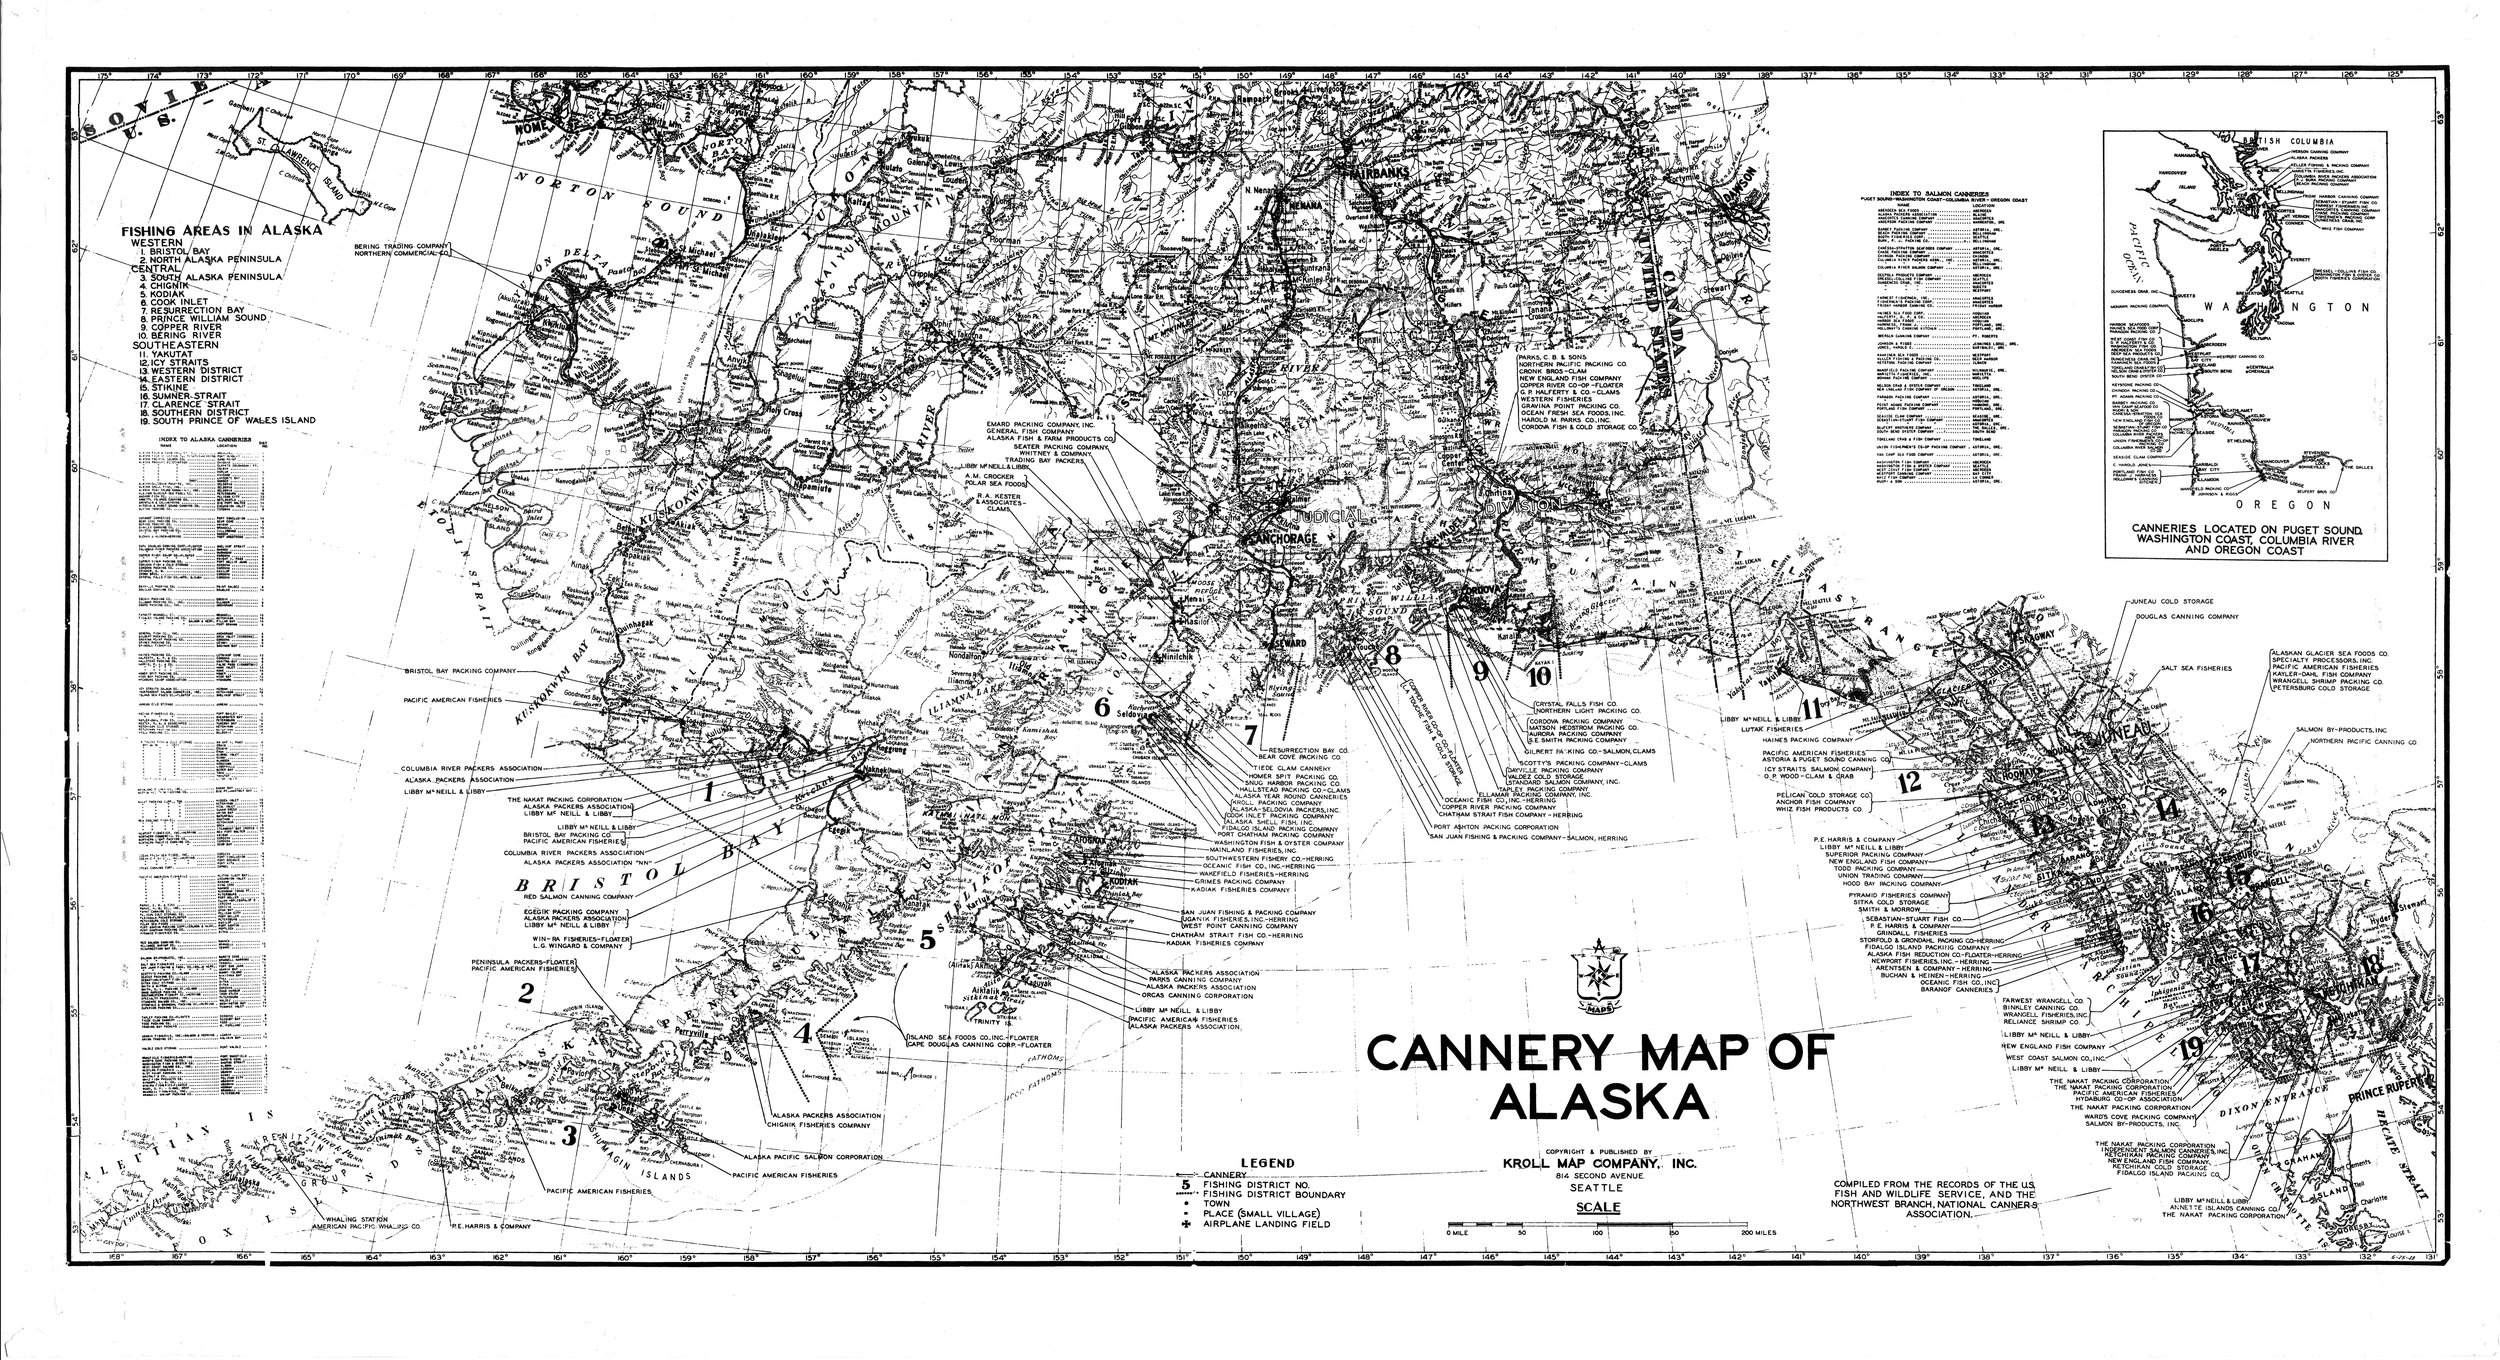 AK Cannery Map 2 [374142] copy.jpg